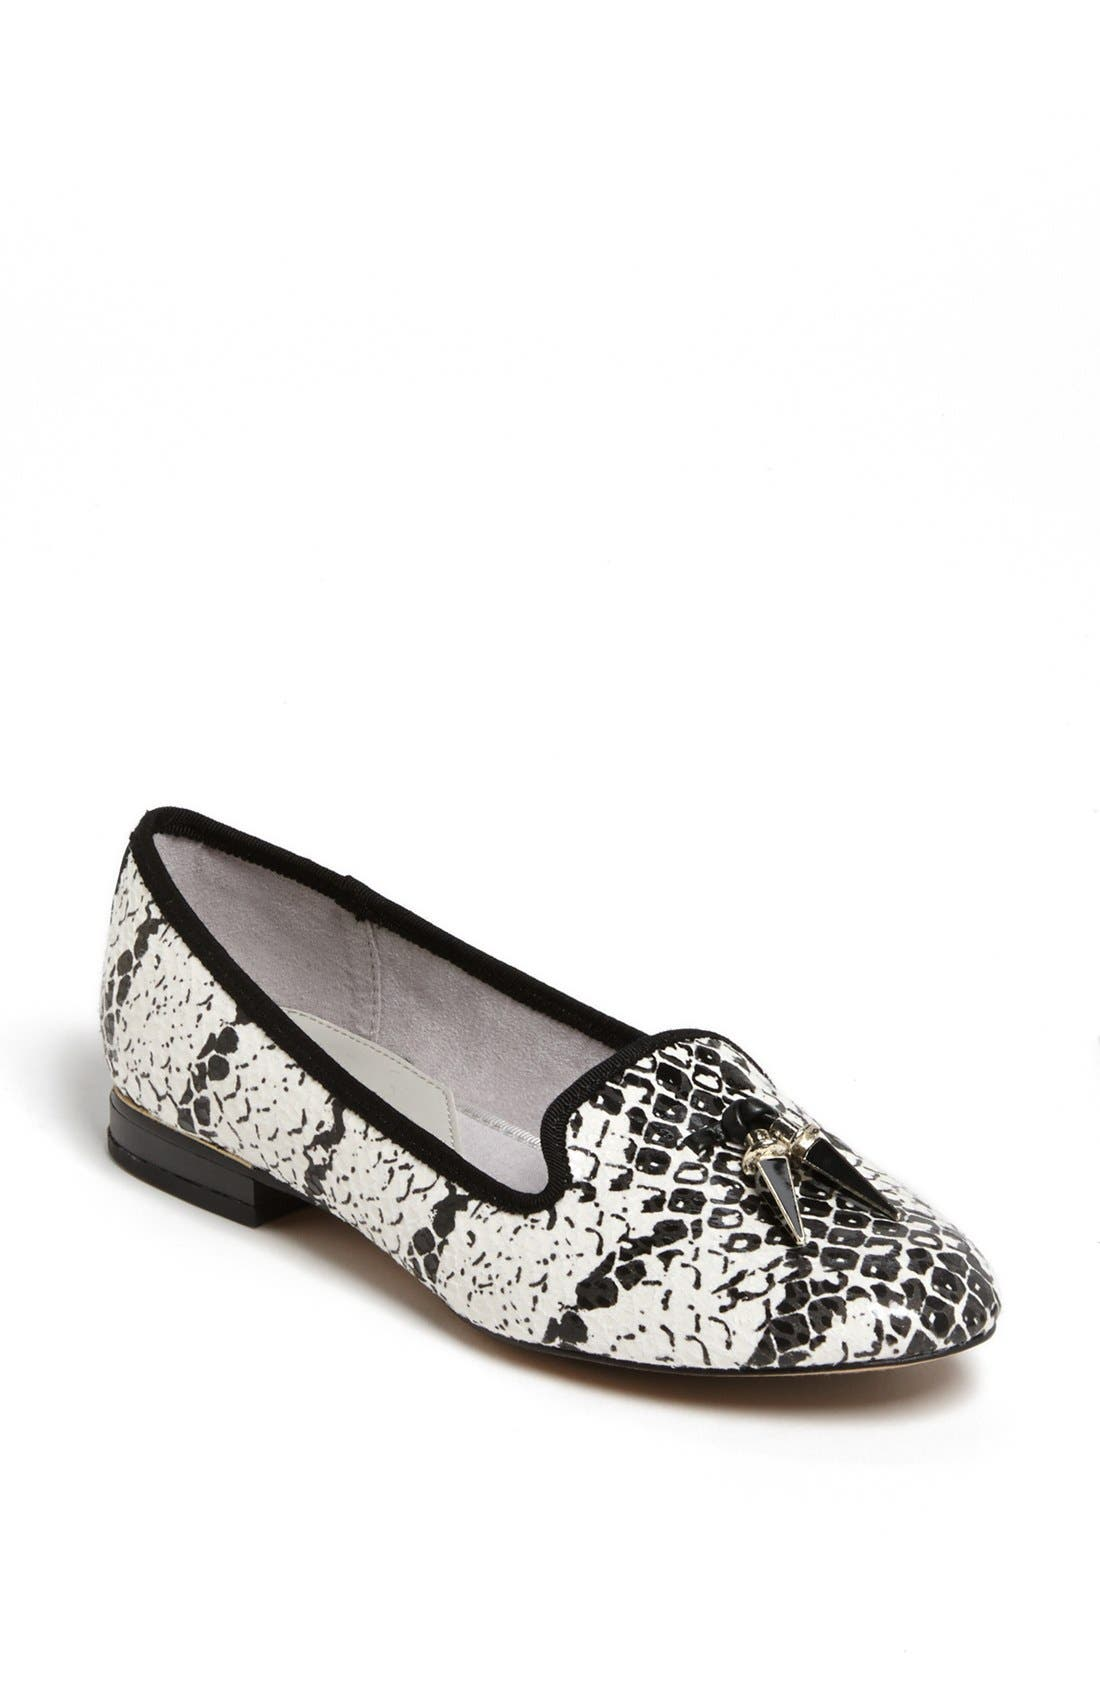 Main Image - Circus by Sam Edelman 'Nell' Flat